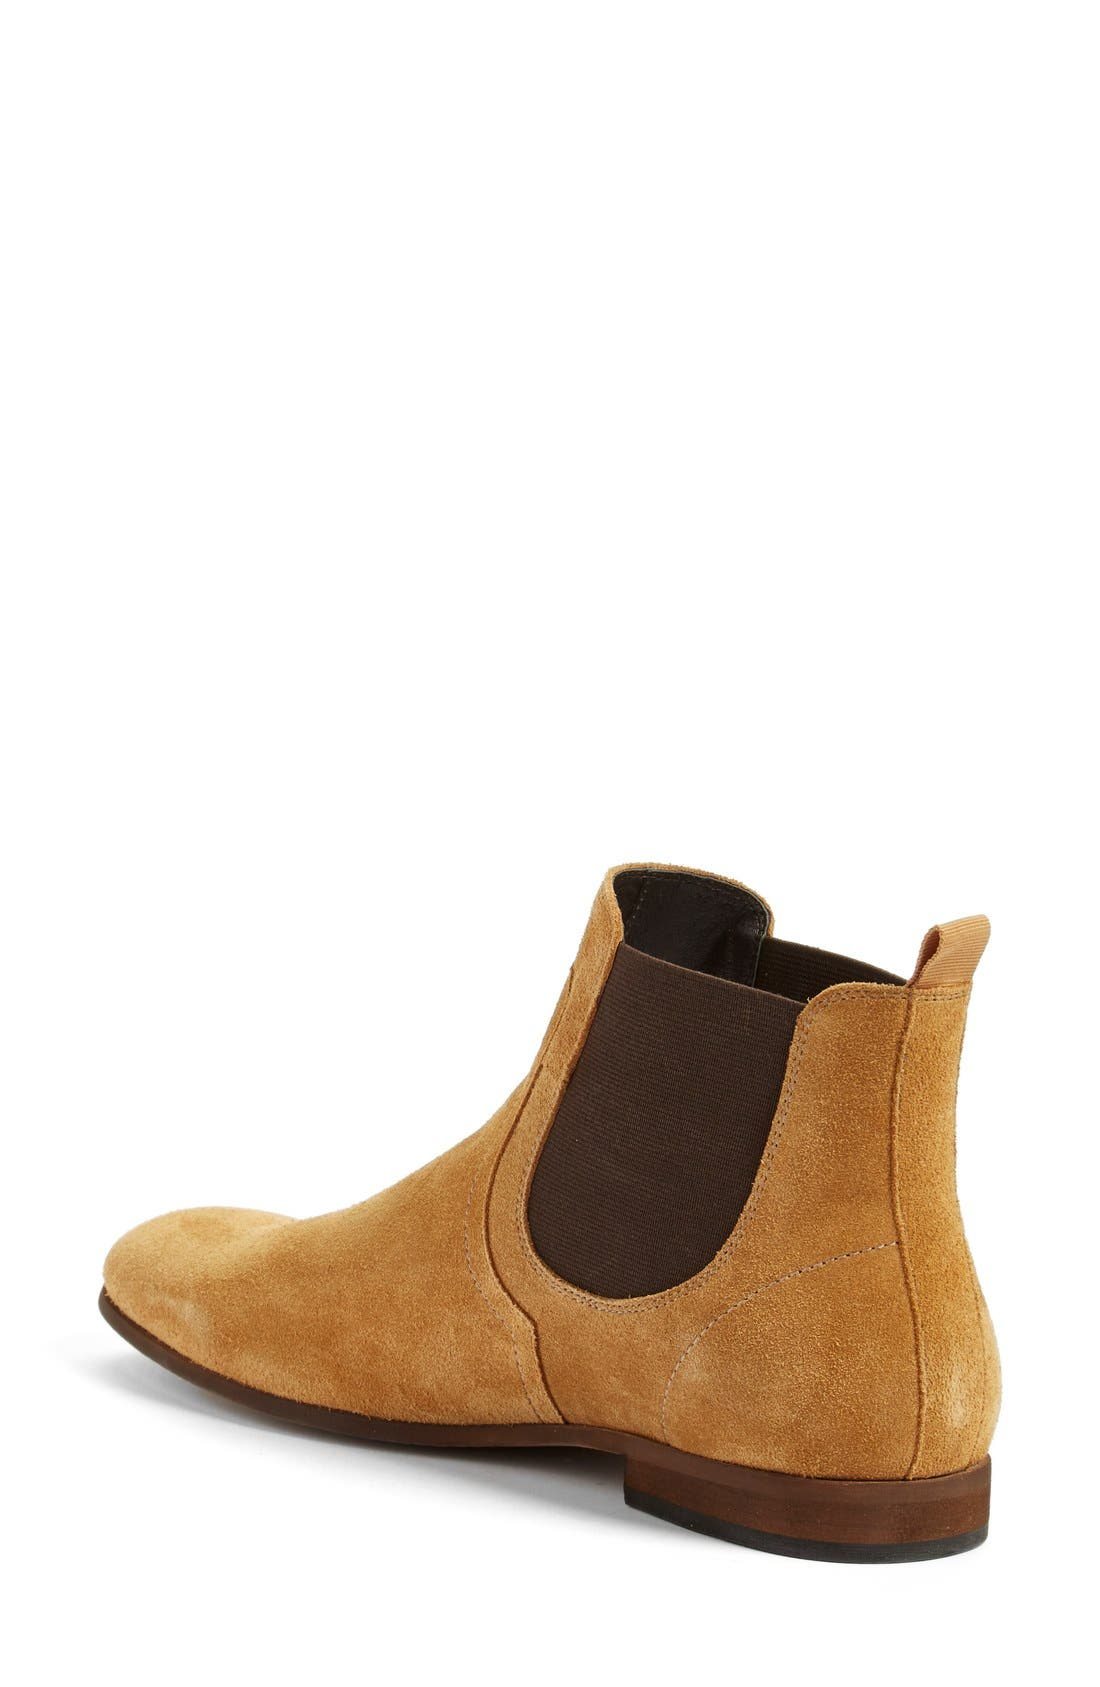 Alternate Image 3  - The Rail Brysen Chelsea Boot (Men)